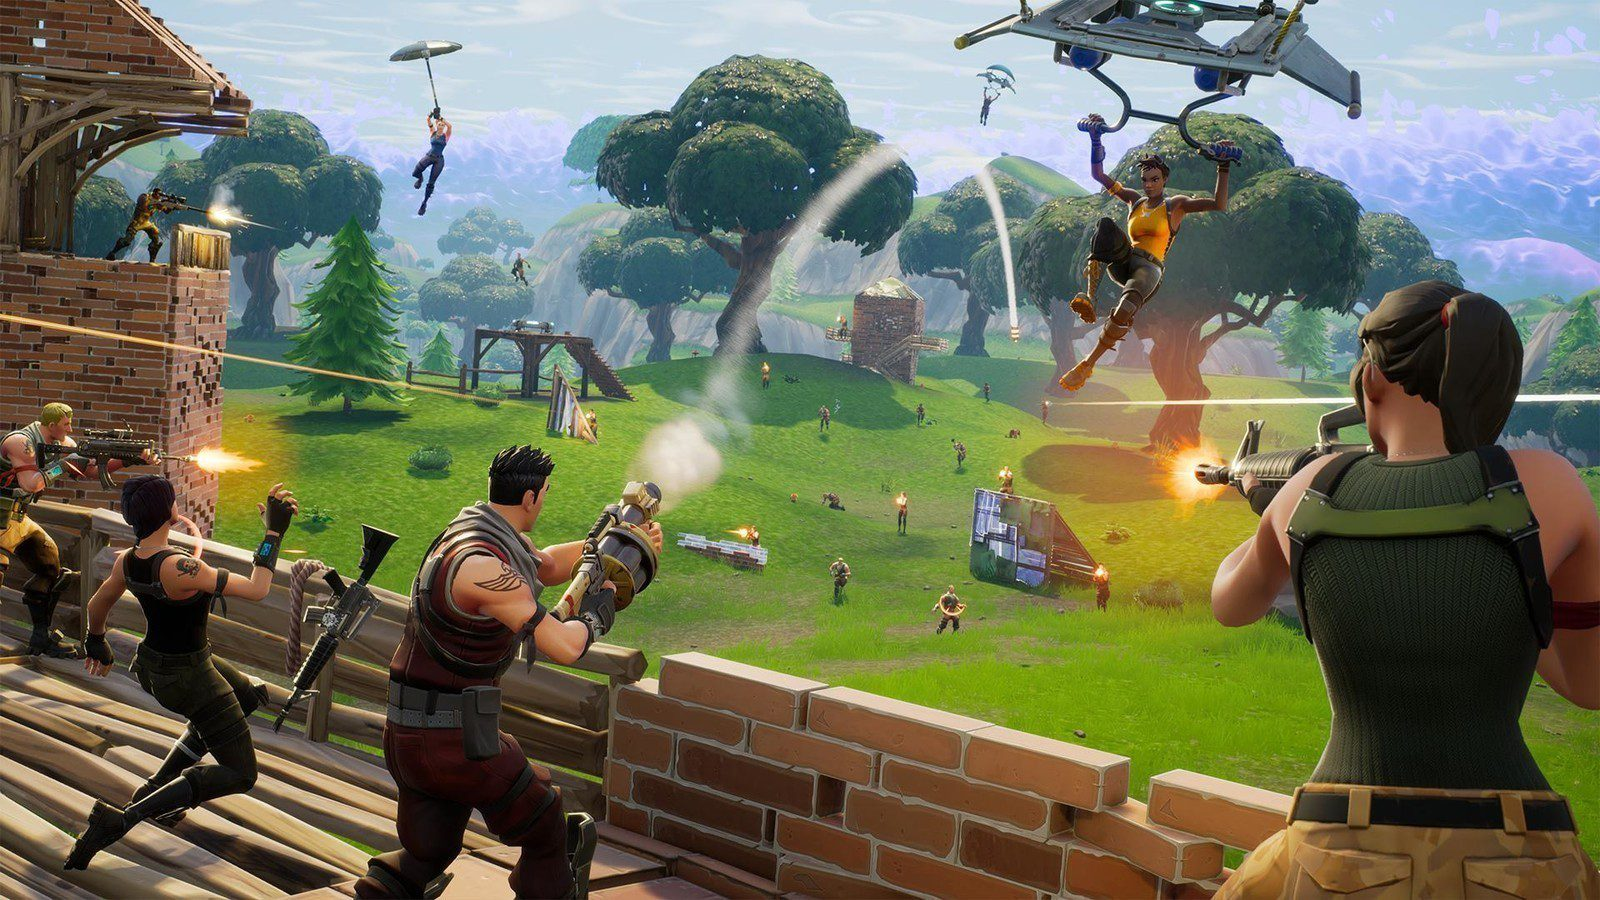 Fortnite Likely Coming To Apple Tv As Tvos Reference Found In Game